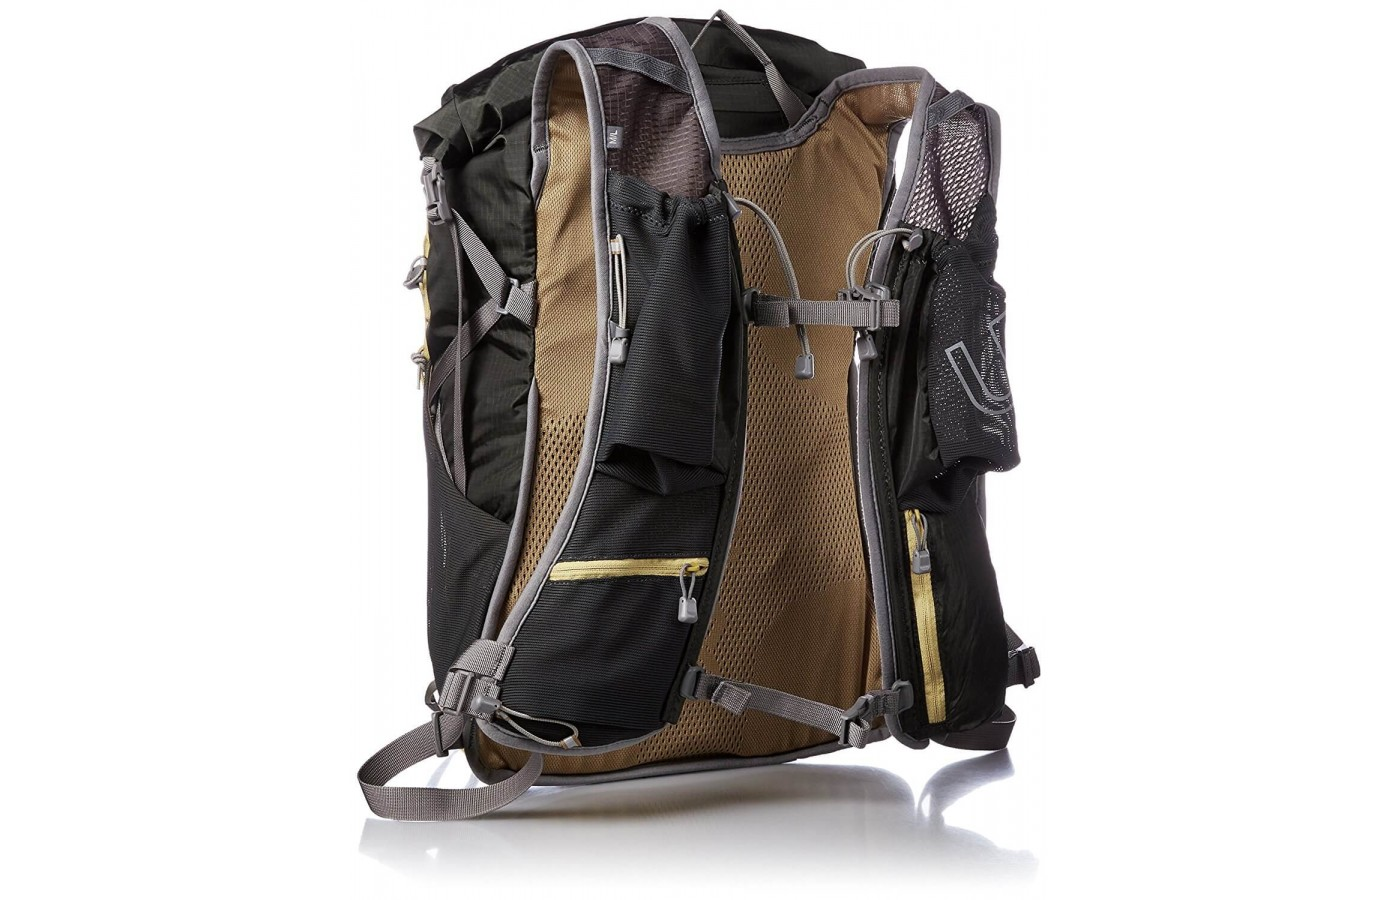 This pack features Ultimate Directions patented InfiKnit Harness for a bounce free ride.